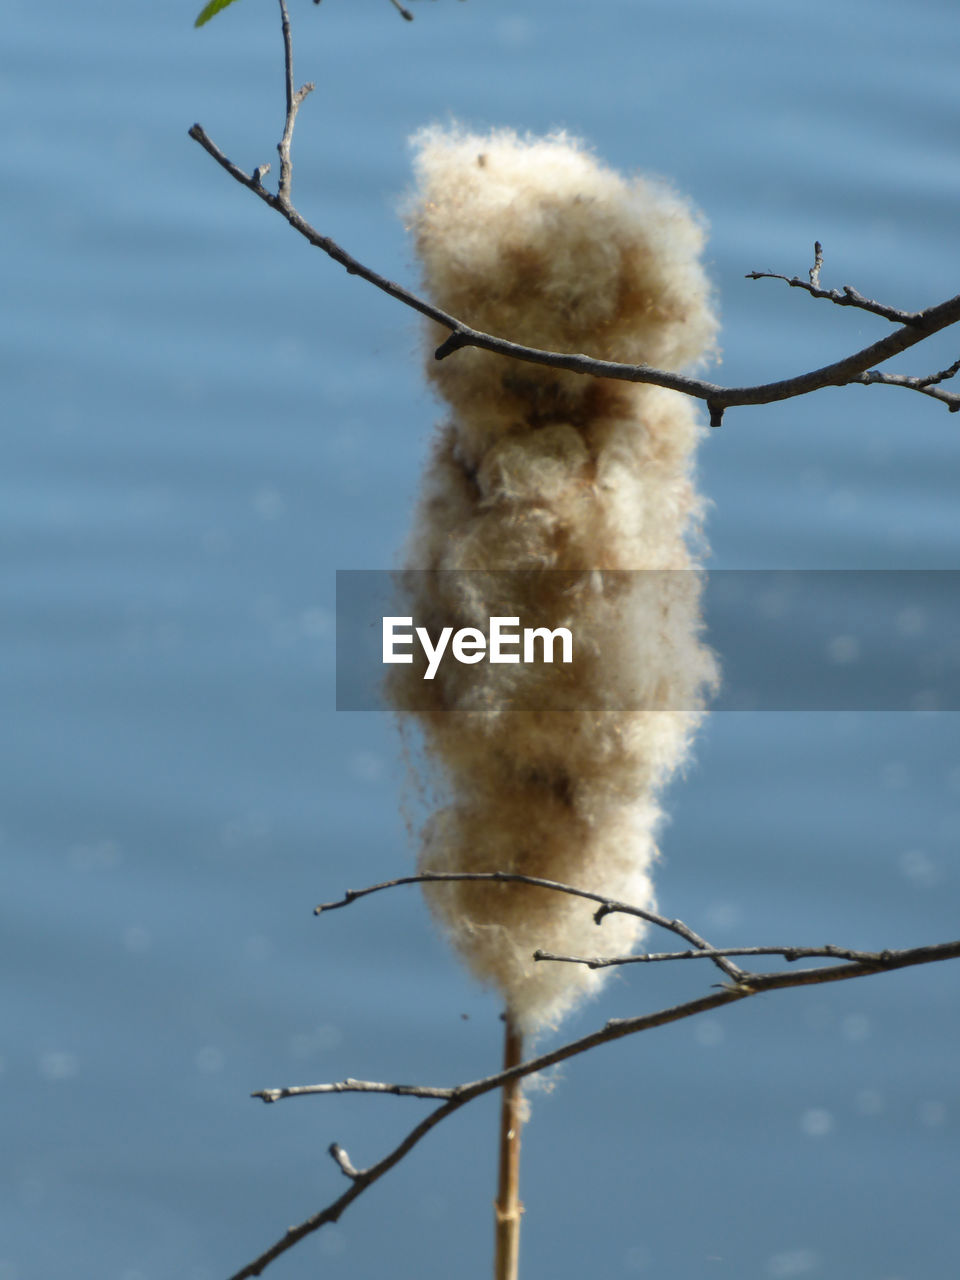 plant, twig, no people, nature, day, focus on foreground, close-up, low angle view, sky, tree, branch, outdoors, selective focus, softness, pussy willow, cattail, white color, beauty in nature, cloud - sky, vulnerability, stick - plant part